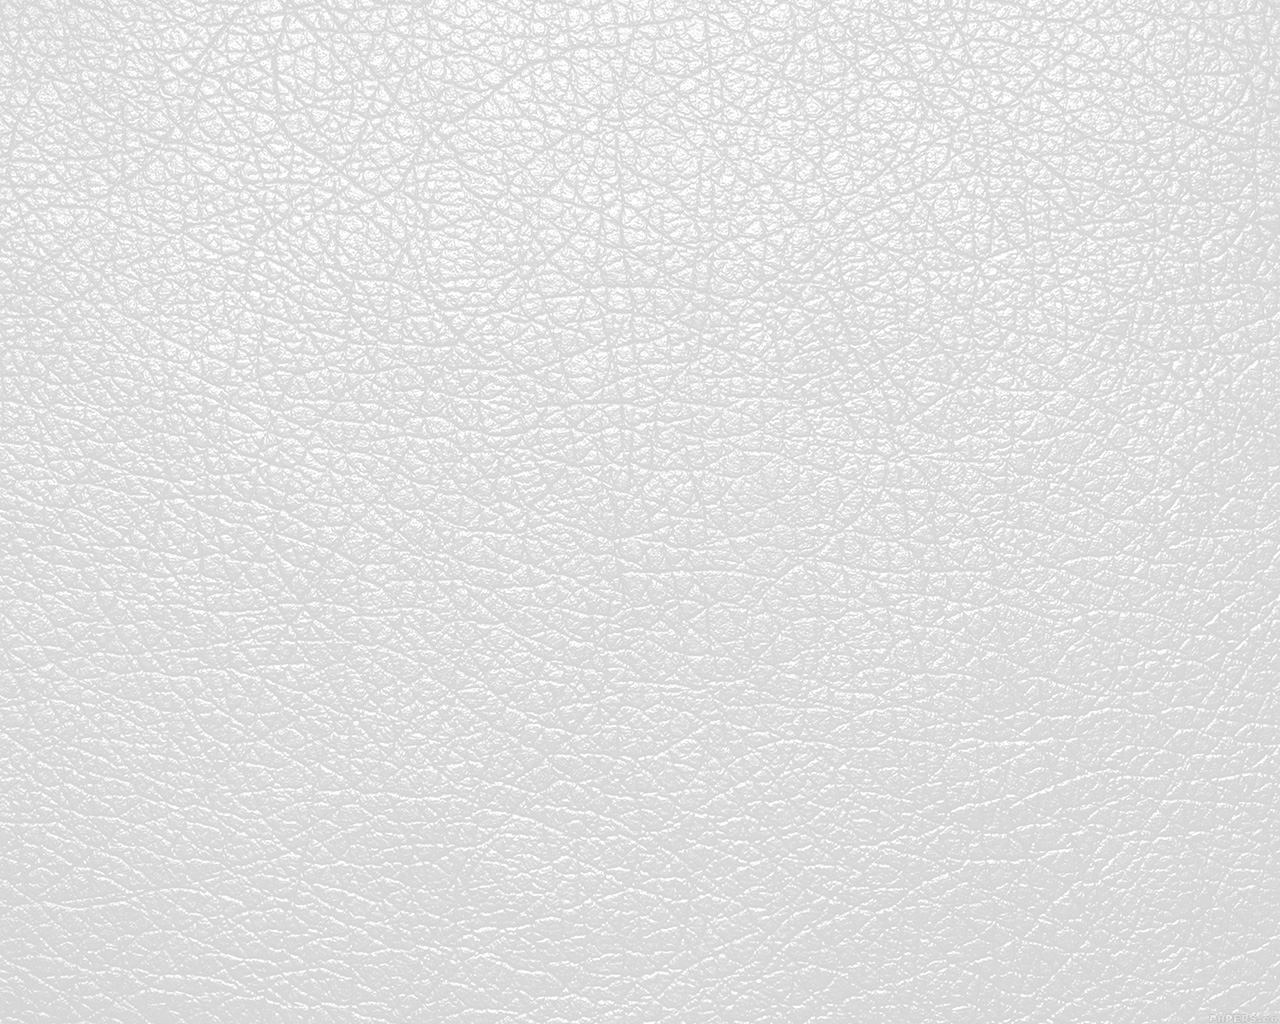 Blue Wallpaper Cute Simple Pattern Vi31 Texture Skin White Leather Pattern Wallpaper